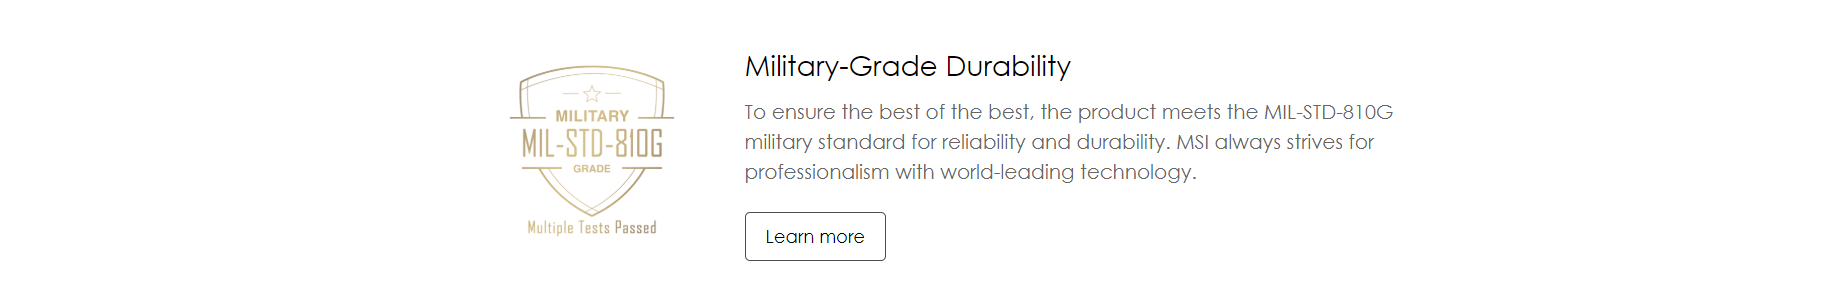 Military-Grade Durability -To ensure the best of the best, the product meets the MIL-STD-810G military standard for reliability and durability. MSI always strives for professionalism with world-leading technology.